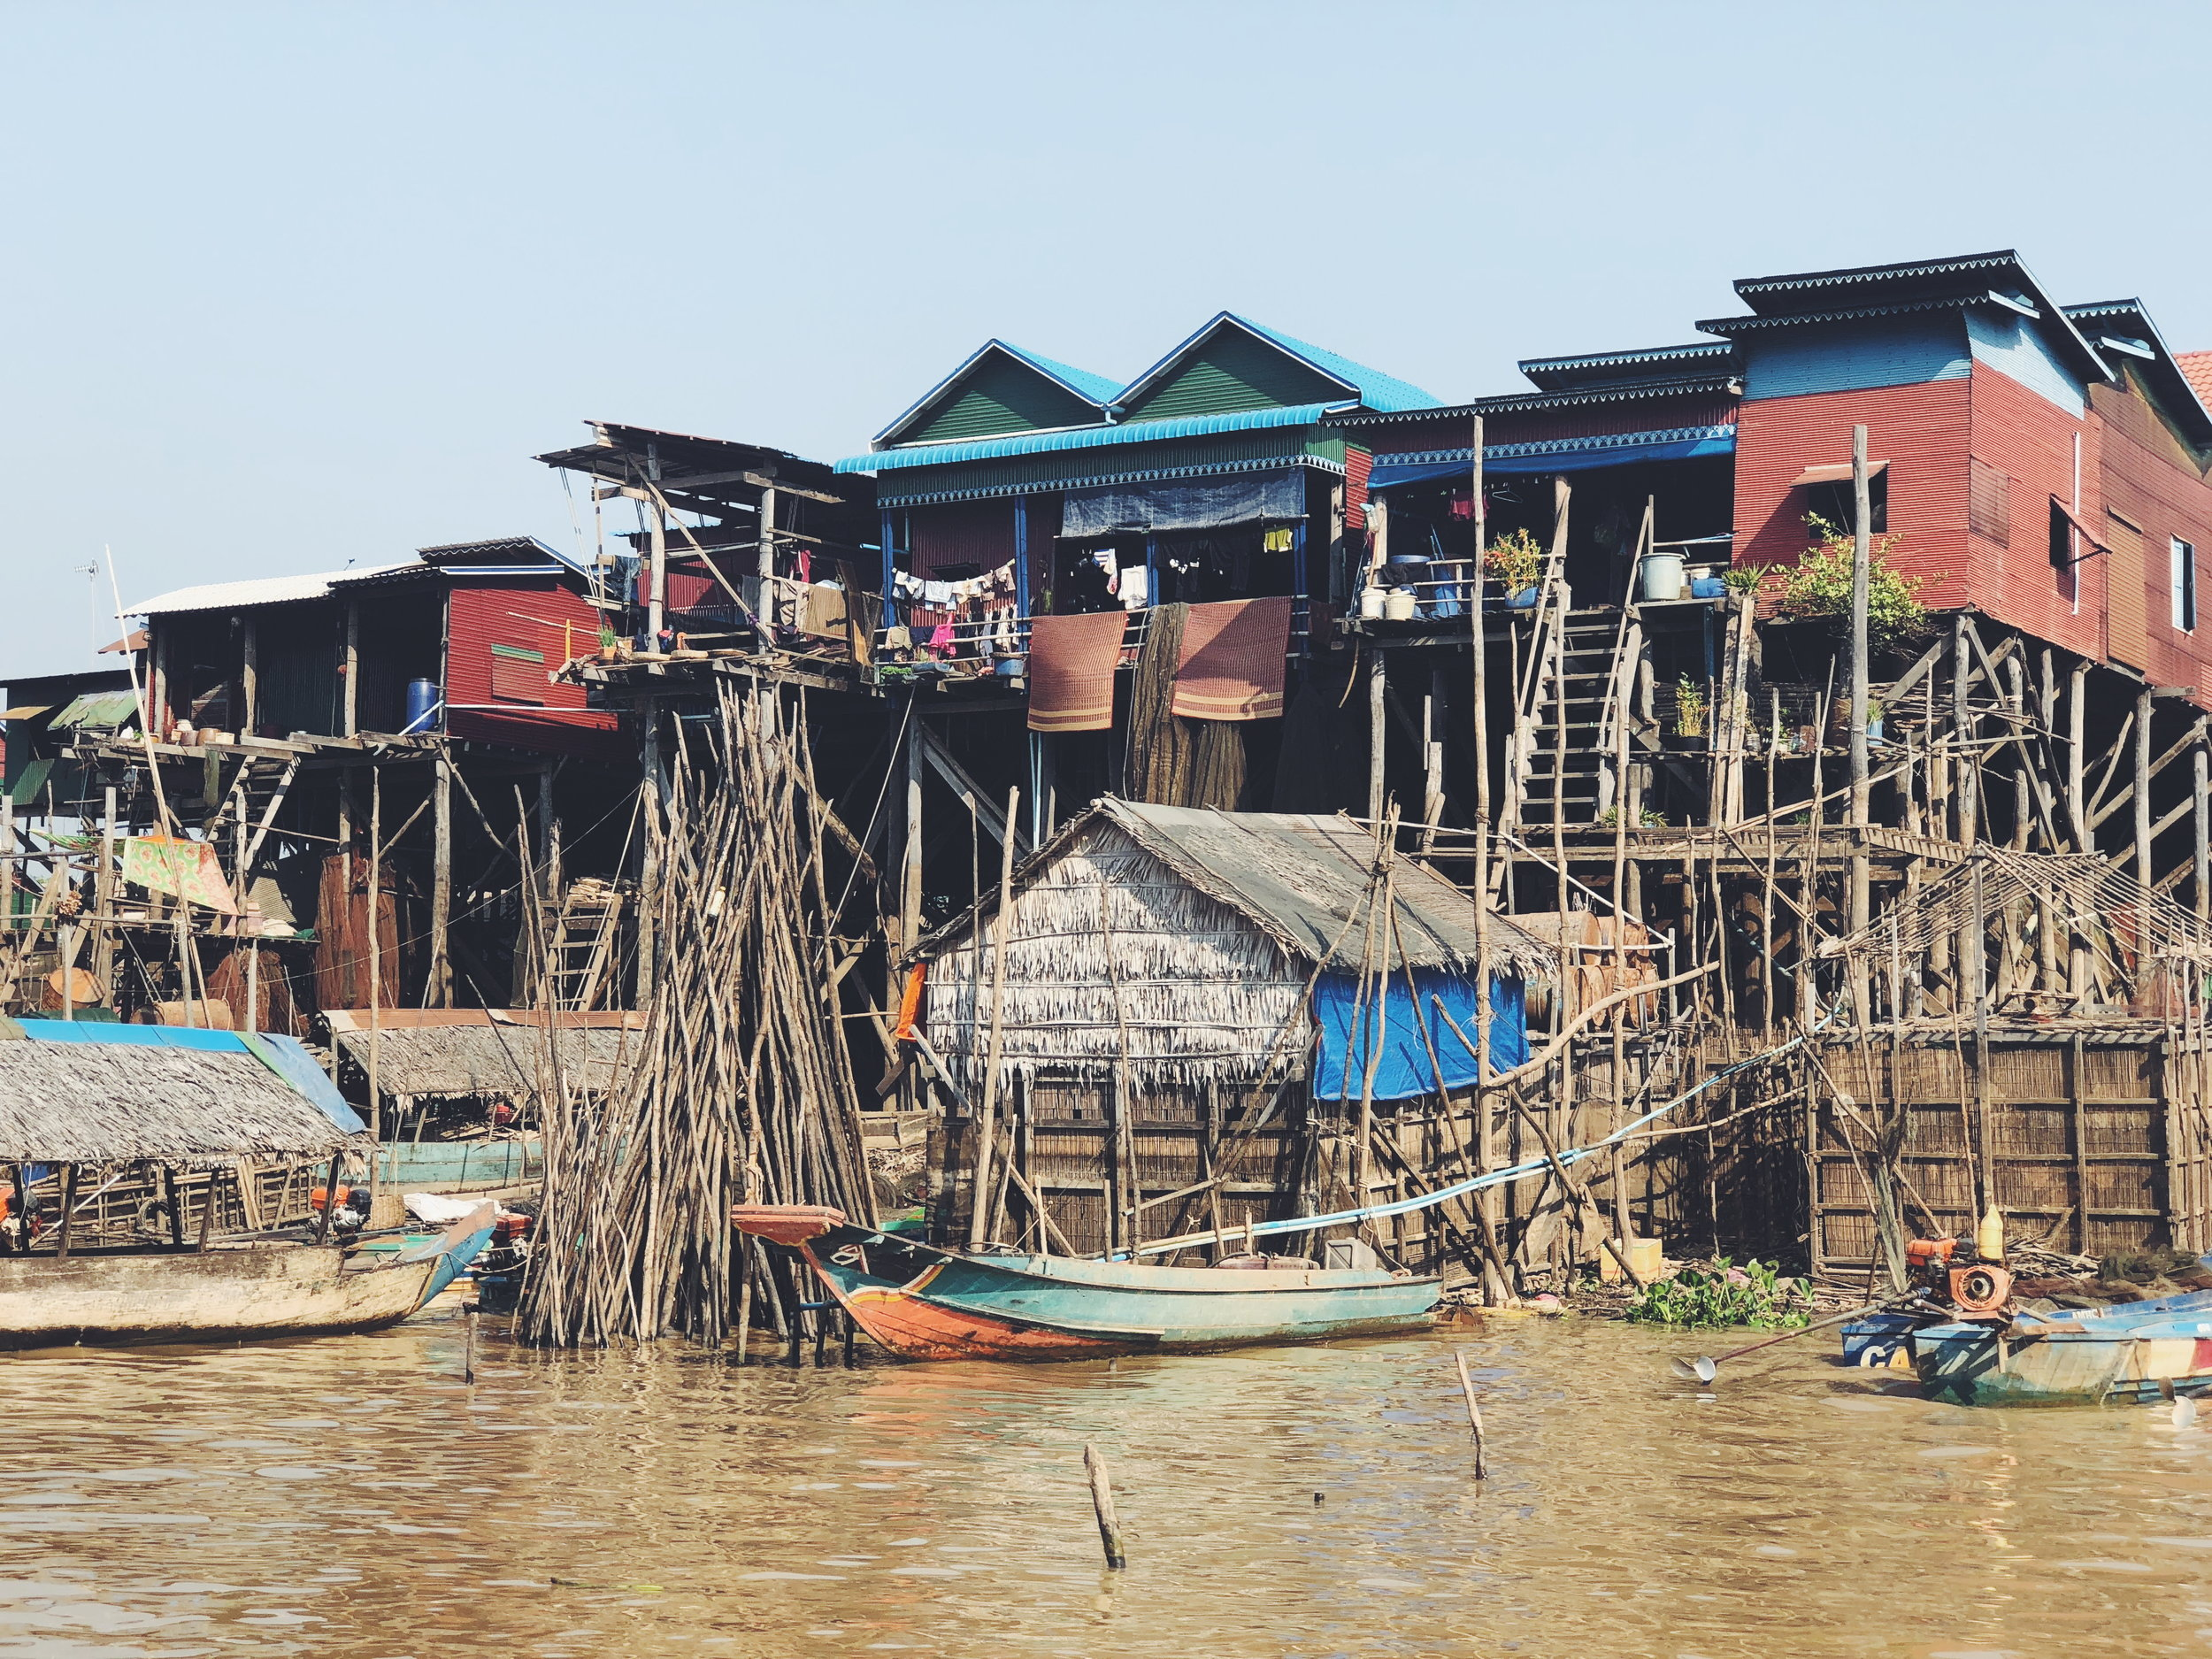 Floating Village of Tonle Sap